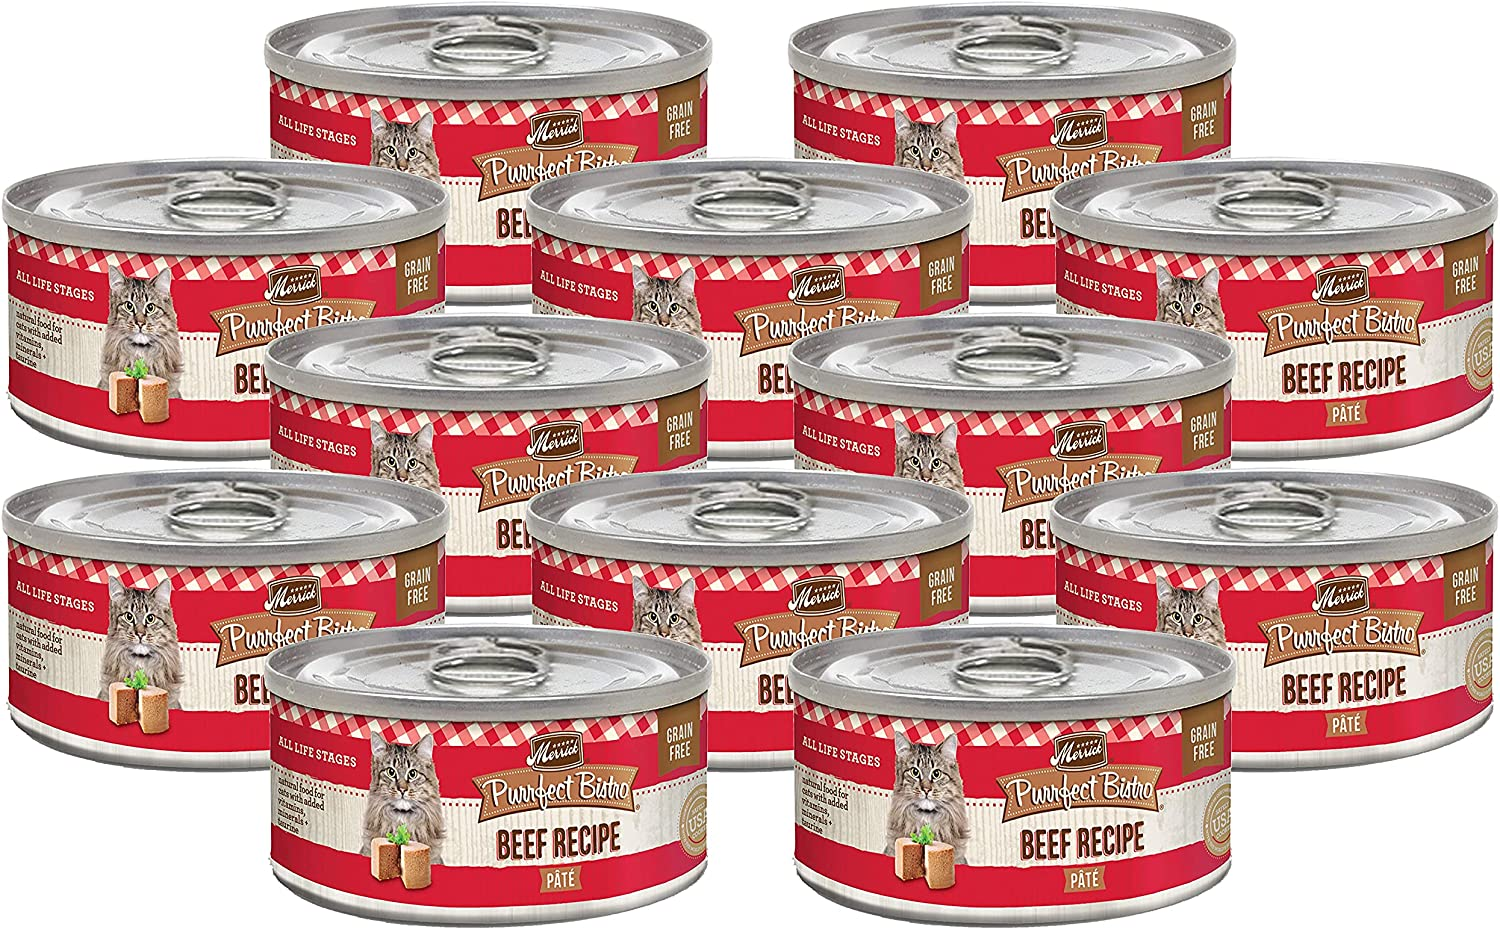 Merrick Purrfect Bistro Canned Wet Cat Food, Beef Recipe Pâté, Grain Free Natural Cat Food with Added Vitamins & Minerals for All Life Stages, 3 OZ Can (Pack of 12)